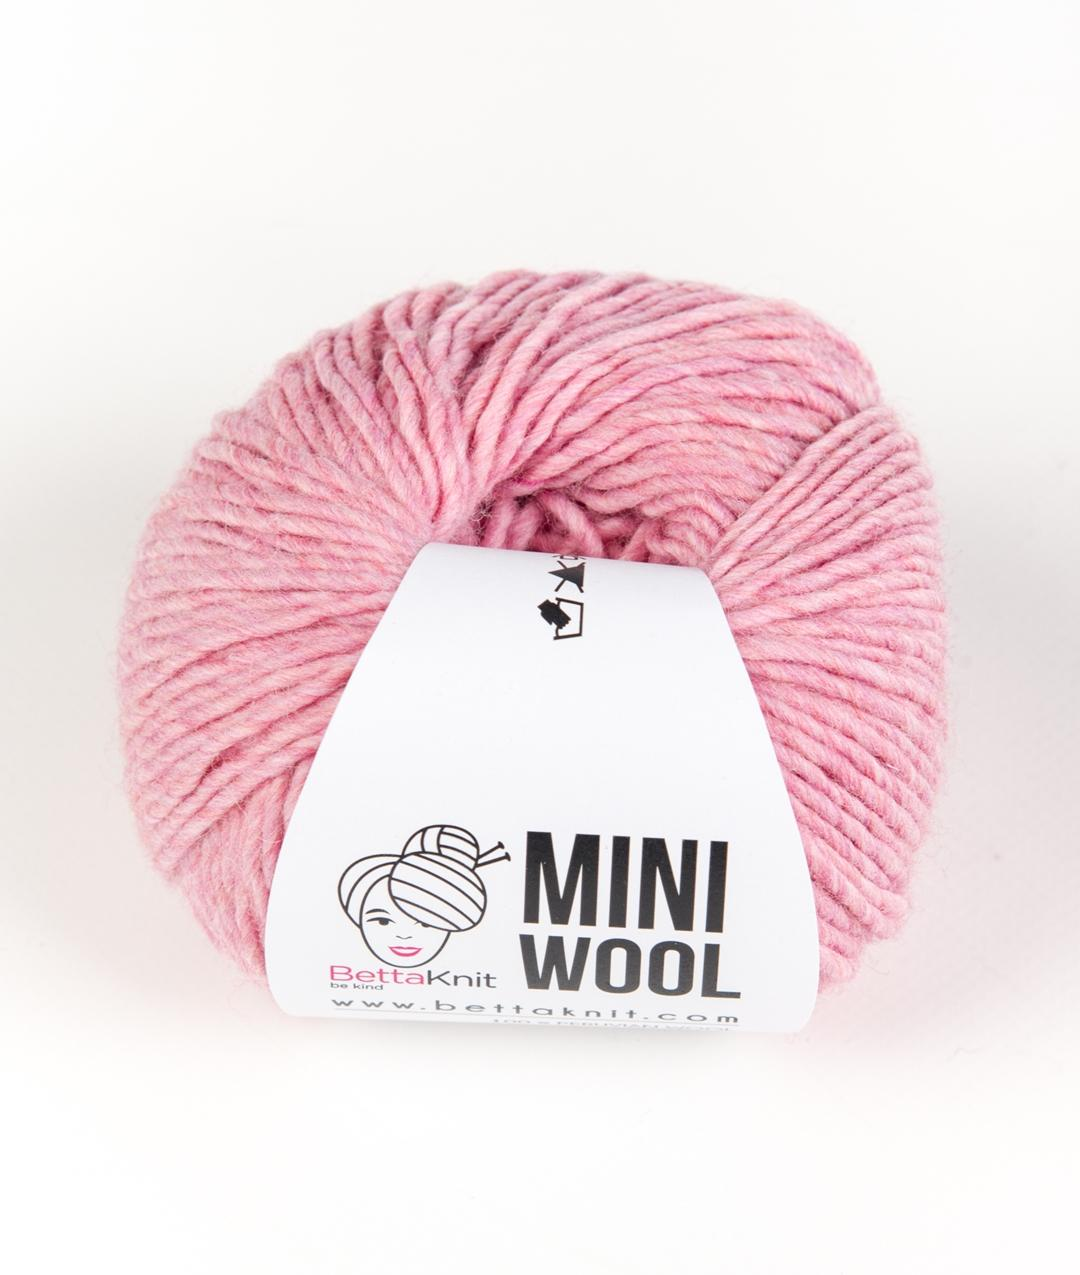 Sales - Wool - Mini Wool - White and Pink Shades - 1